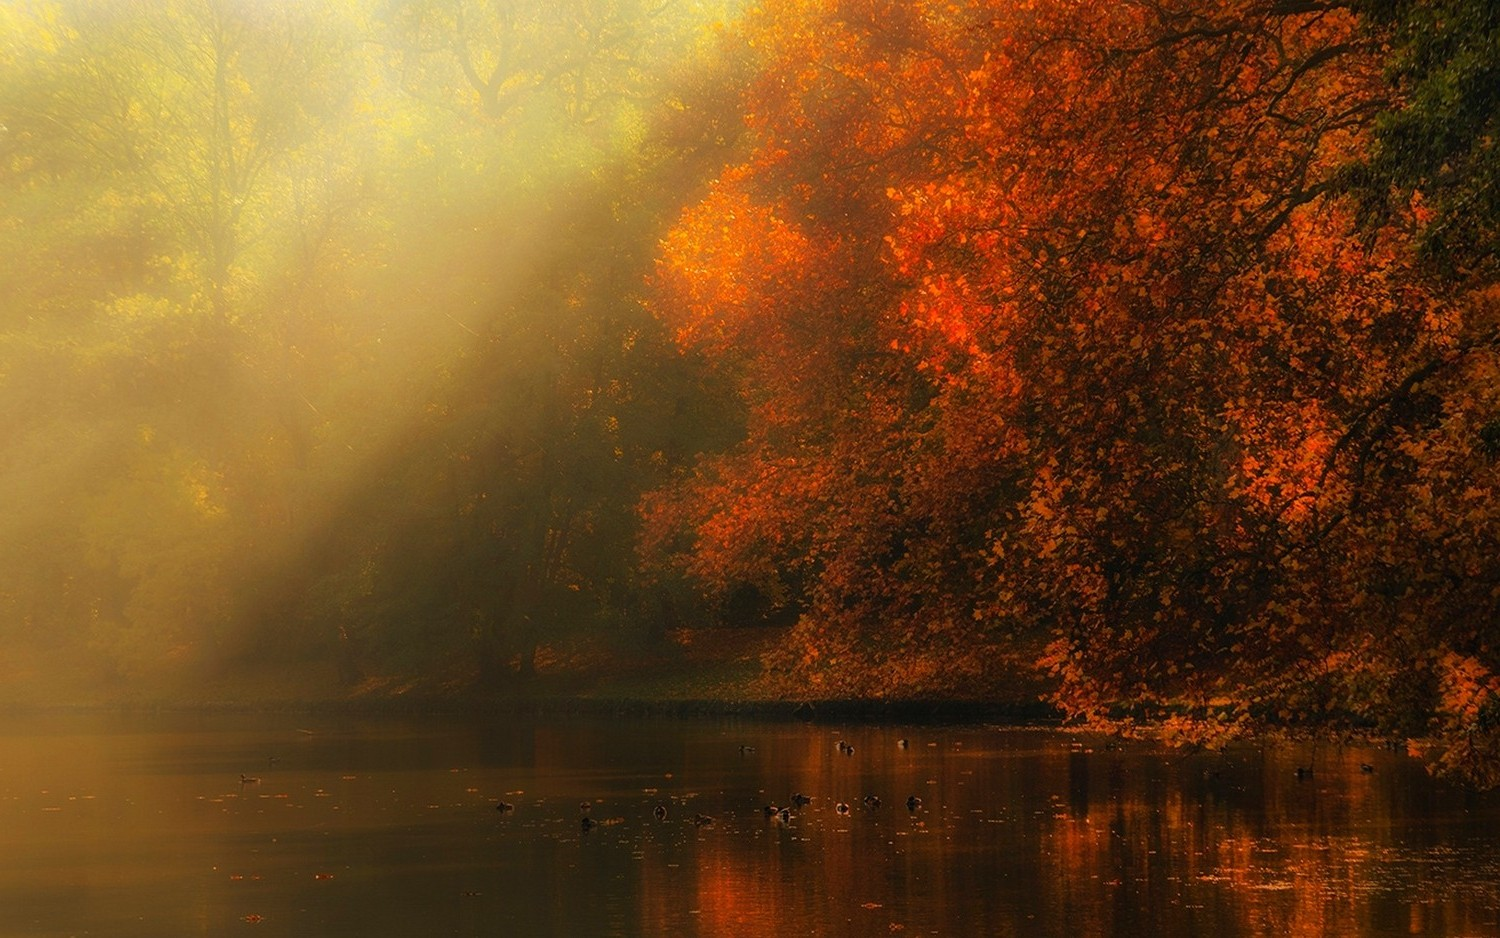 Fall Forest Wallpaper For Desktop Nature Landscape River Forest Fall Mist Sun Rays